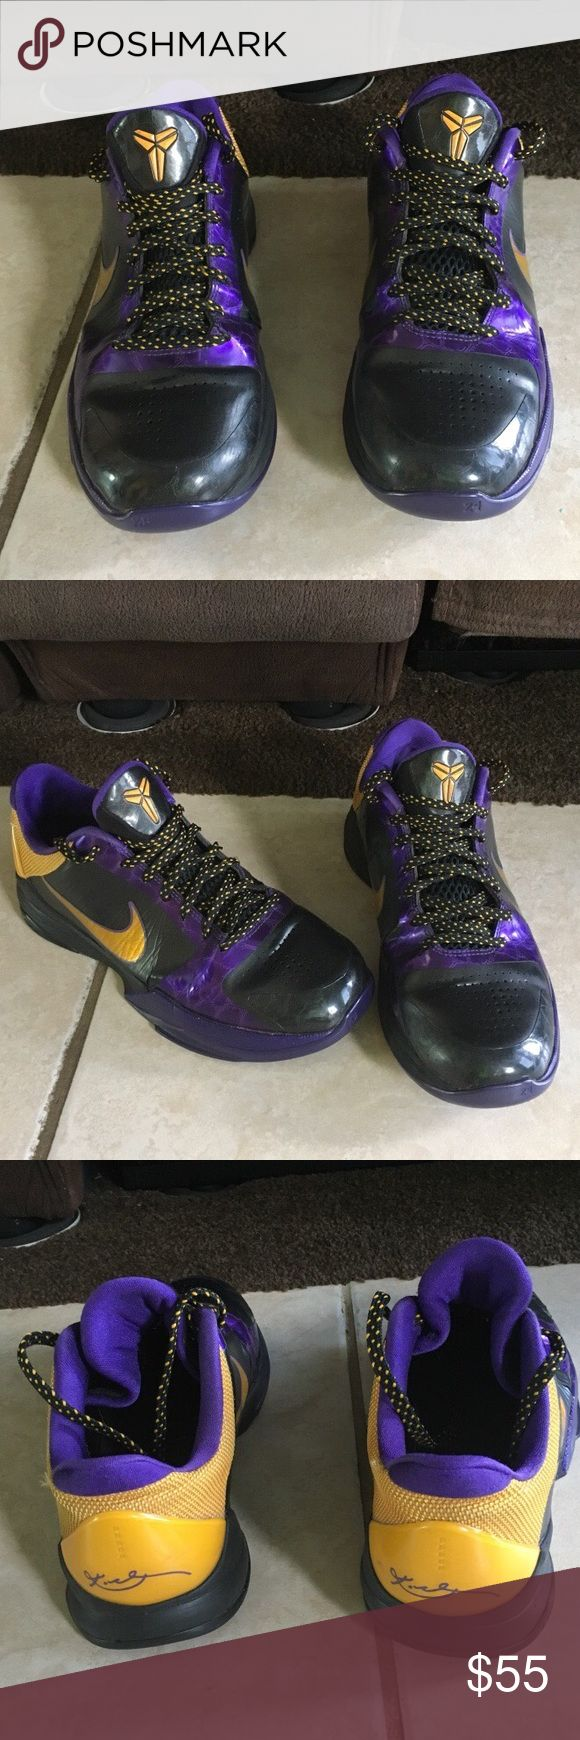 Nike kobe basketball shoes KOBE BRYANT 6.5Y BBALL SHOES.  ONLY WORN TWICE Nike Shoes Athletic Shoes